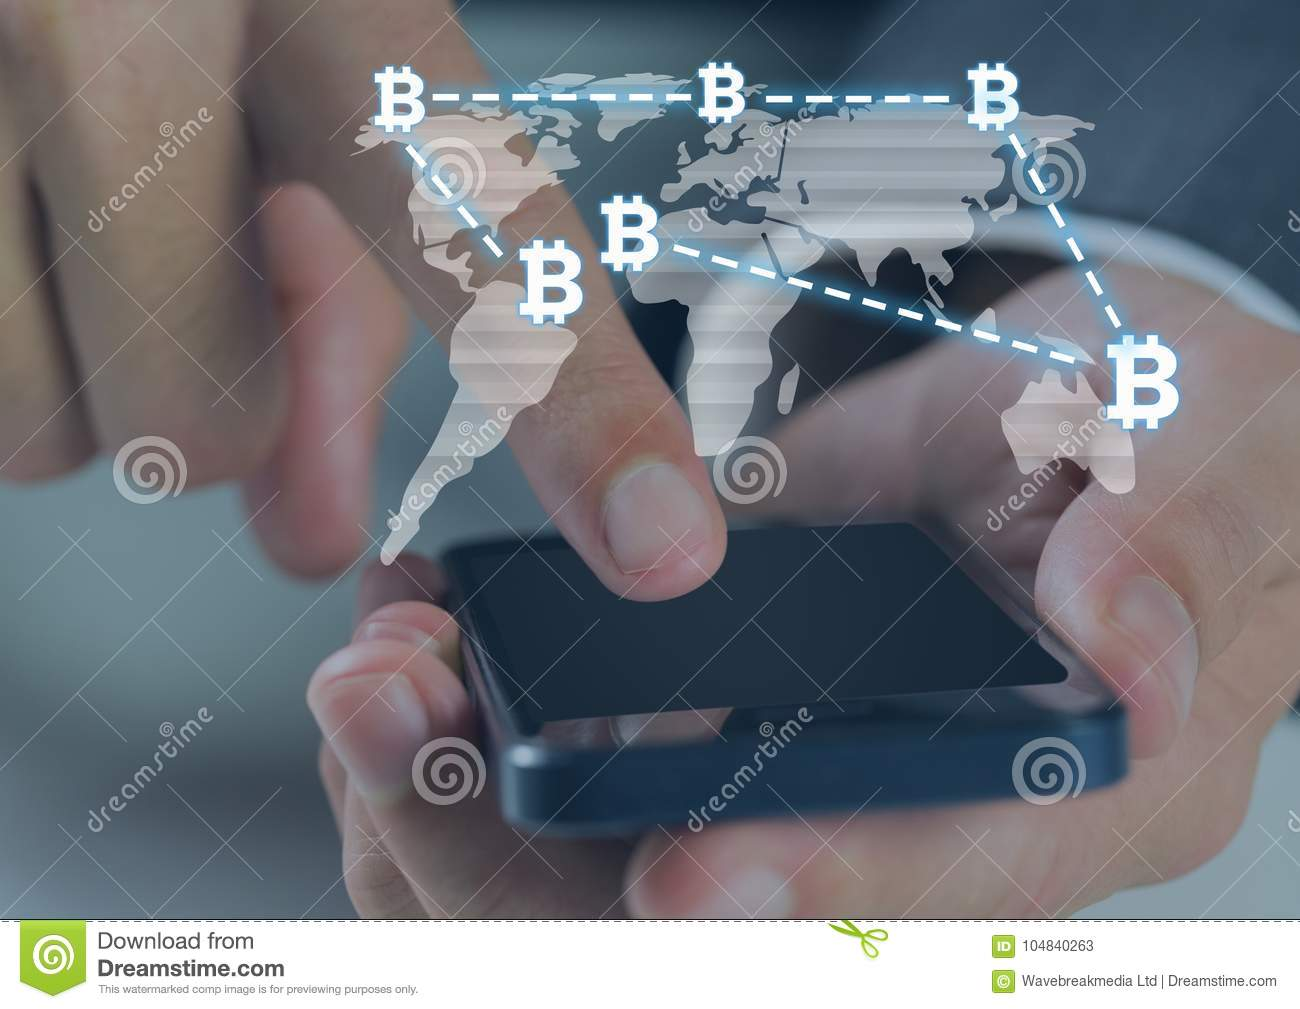 World Map On Hands.Bitcoin Icons And World Map And Hands Using Phone Stock Image